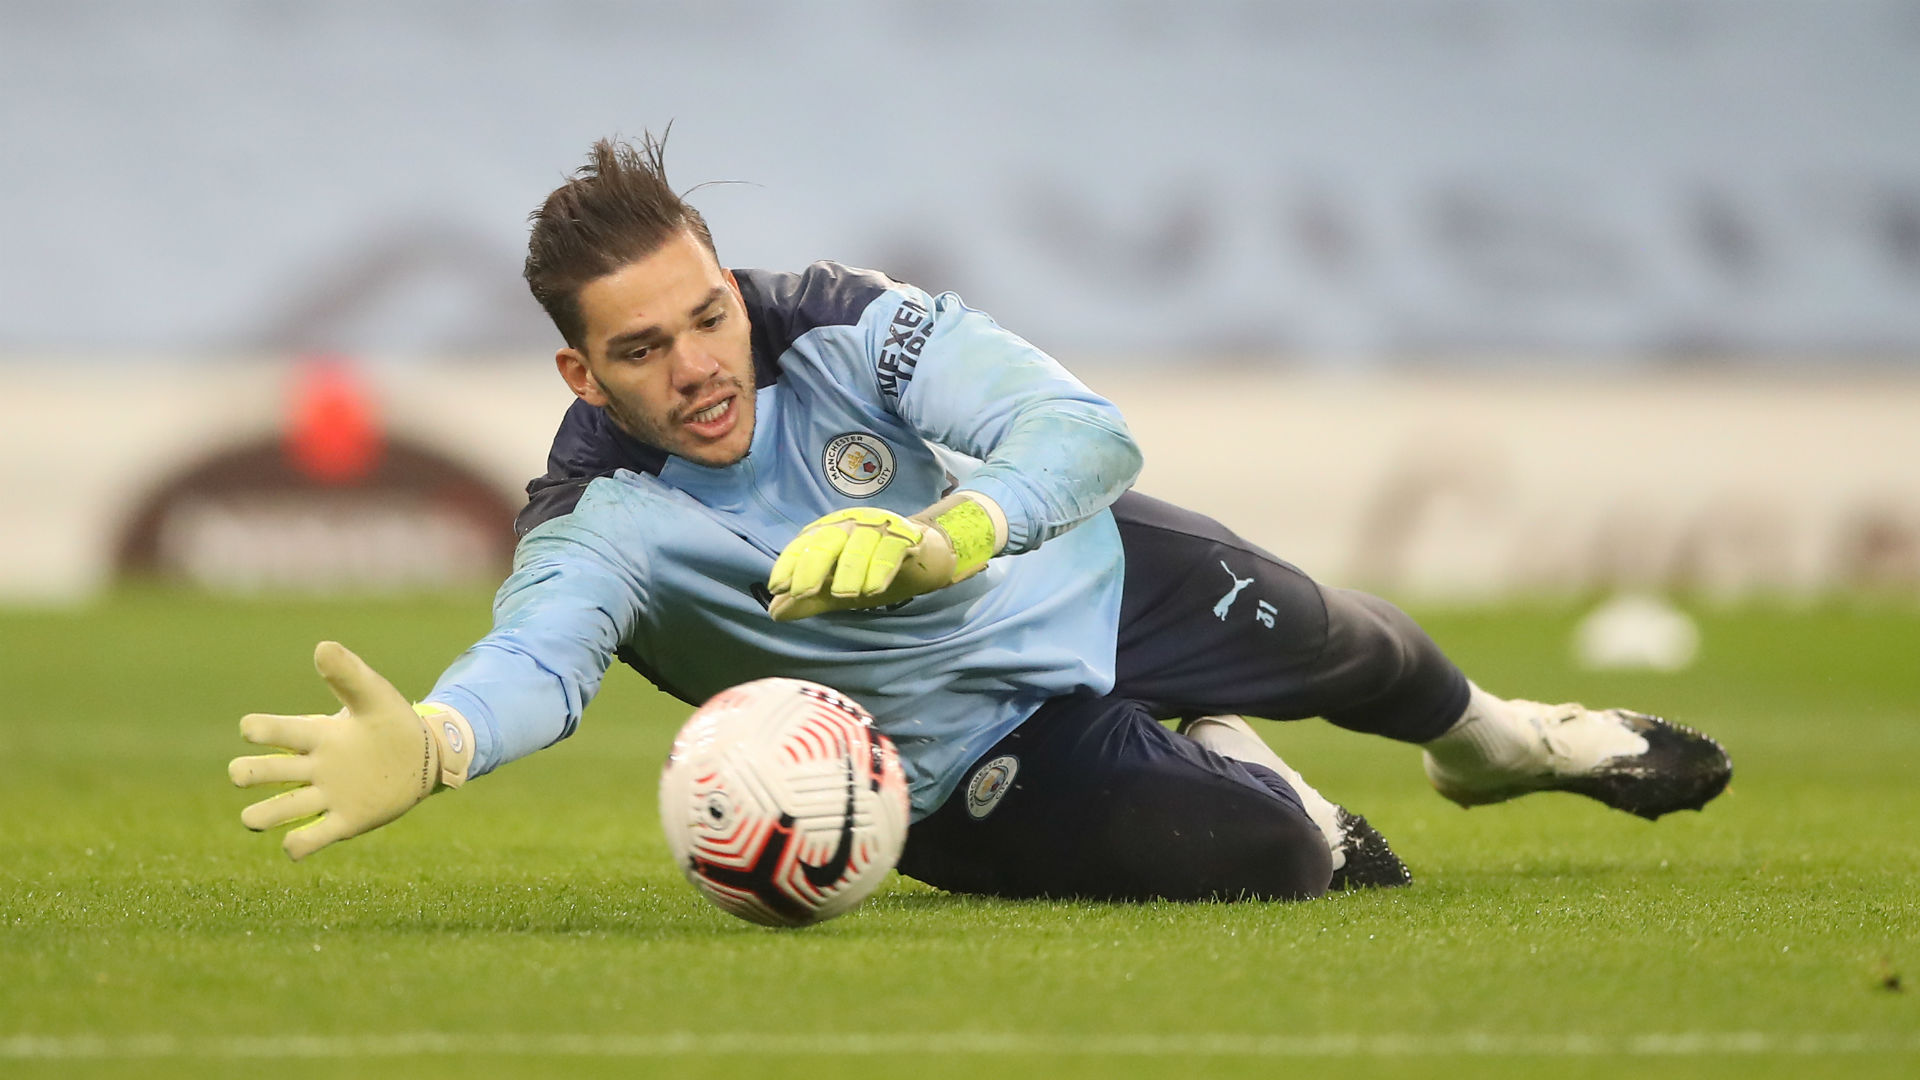 Ederson to start for Brazil, Menino cut after positive COVID-19 test